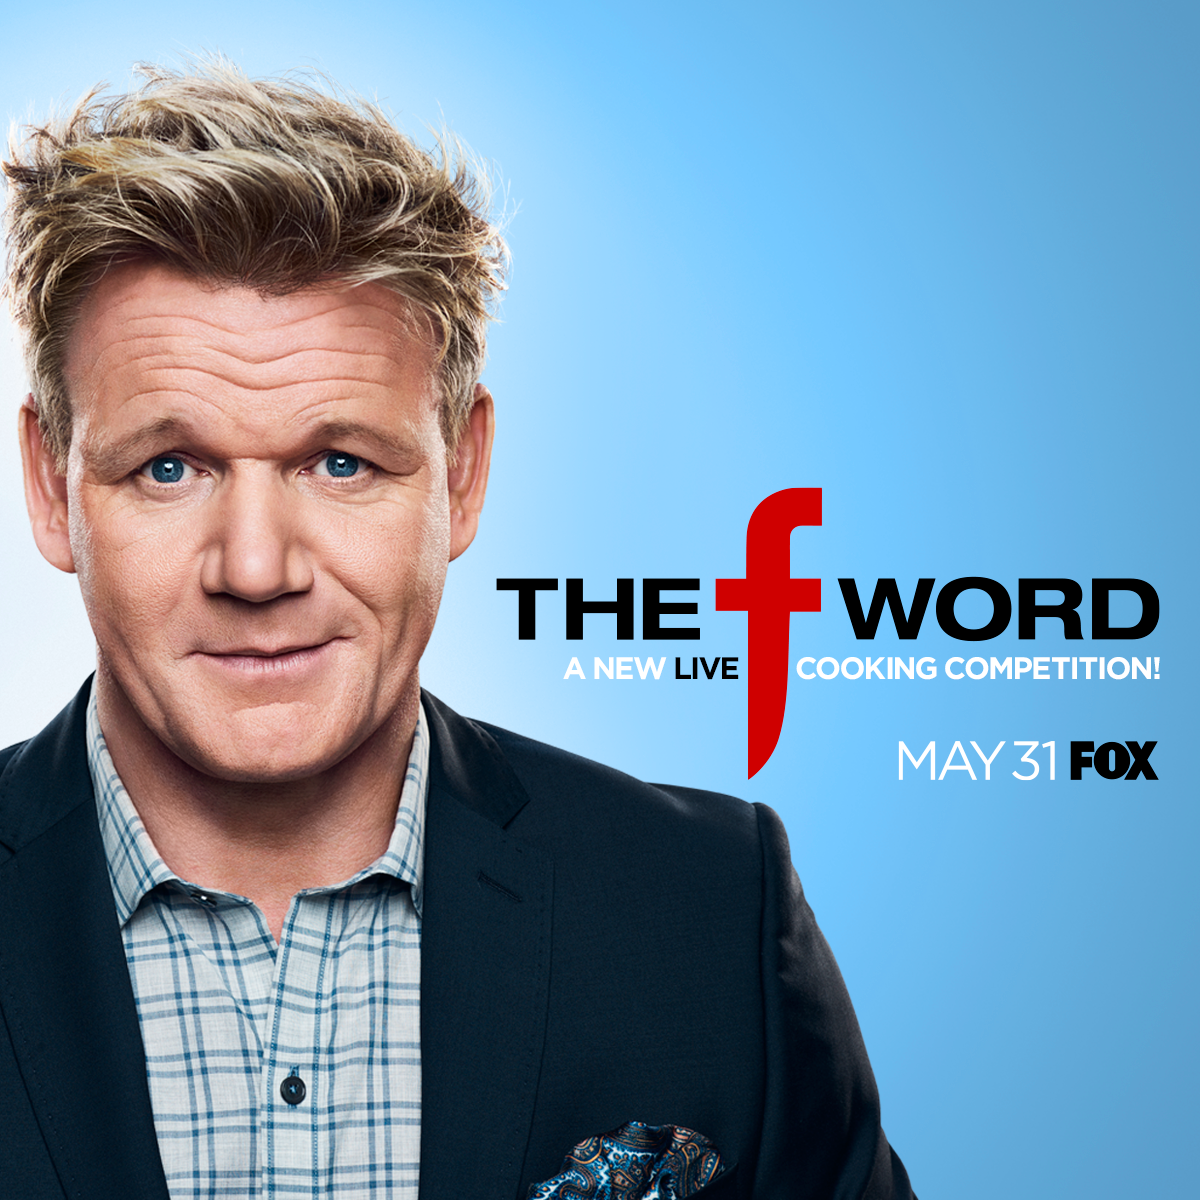 The F Word With Gordon Ramsay Is A Bold New Show From The Award Winning Chef And Series Host Based On His Hit U K Chef Gordon Gordon Ramsay Chef Gordon Ramsay